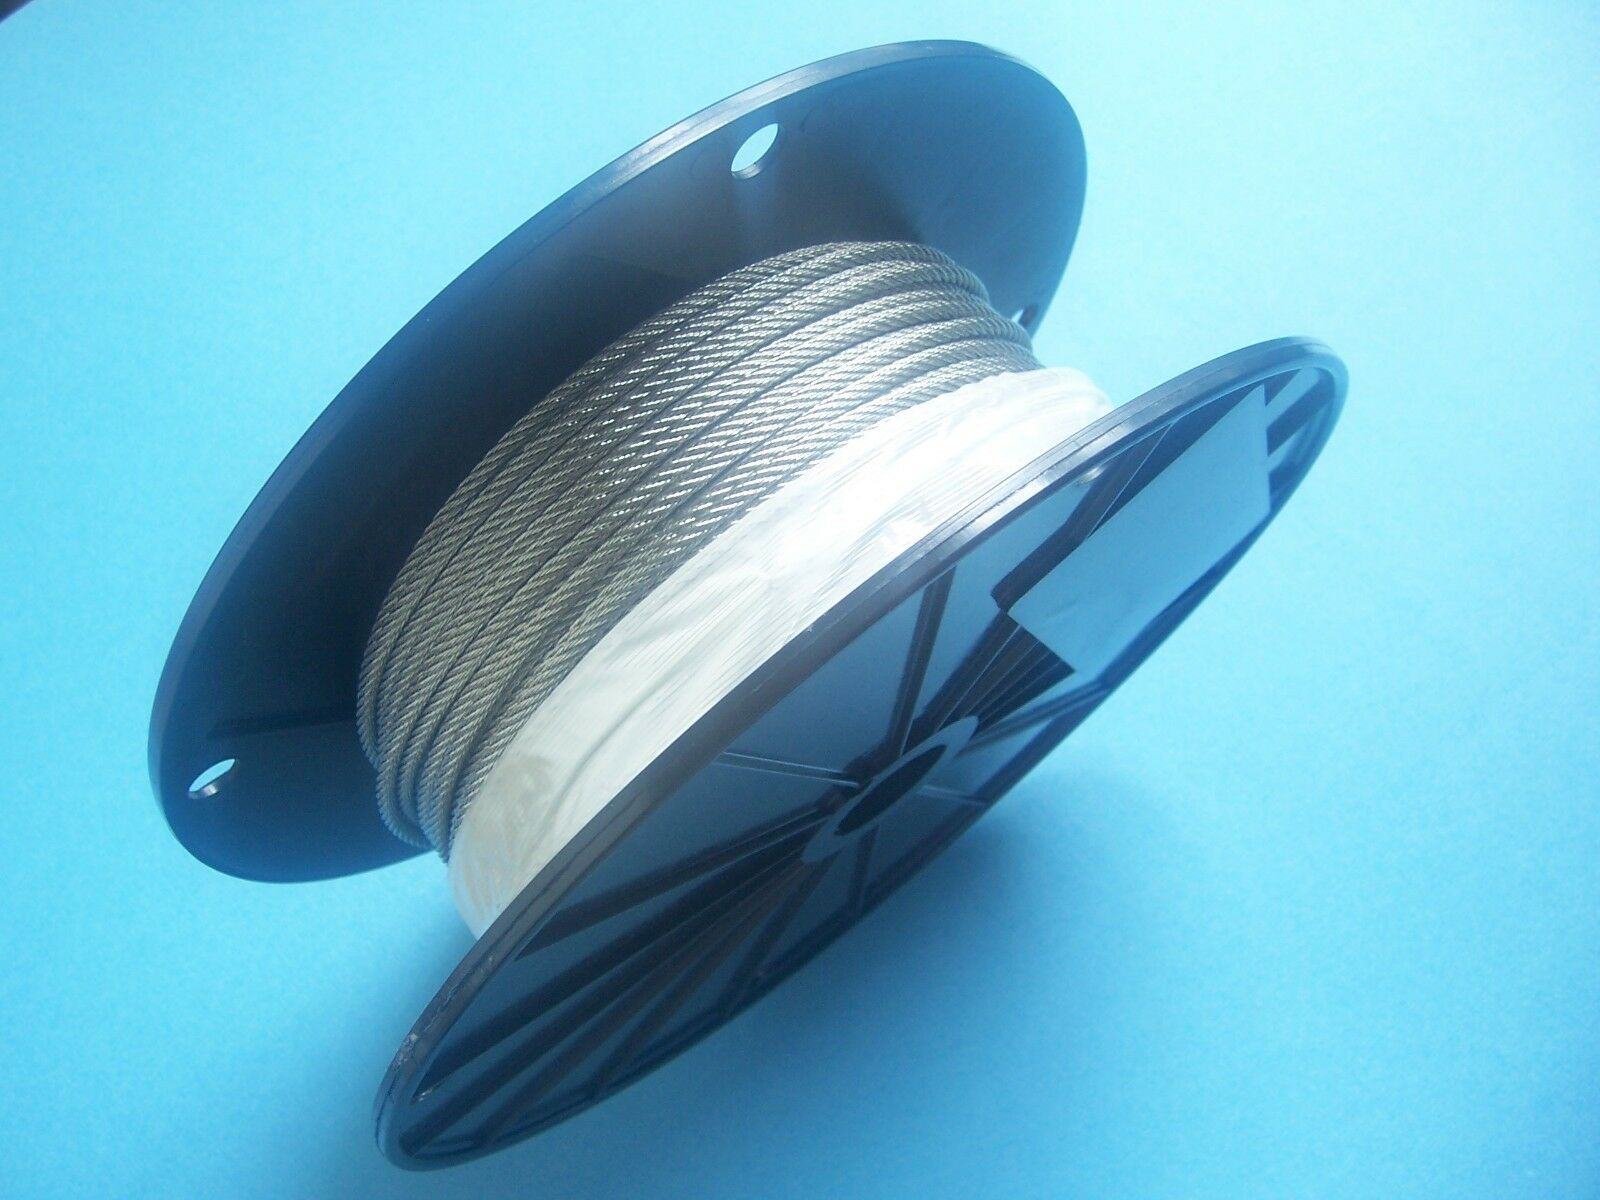 304 Stainless Steel Wire Rope Cable, 5 64 , 7x7, 1000 ft Reel, Made in Korea.